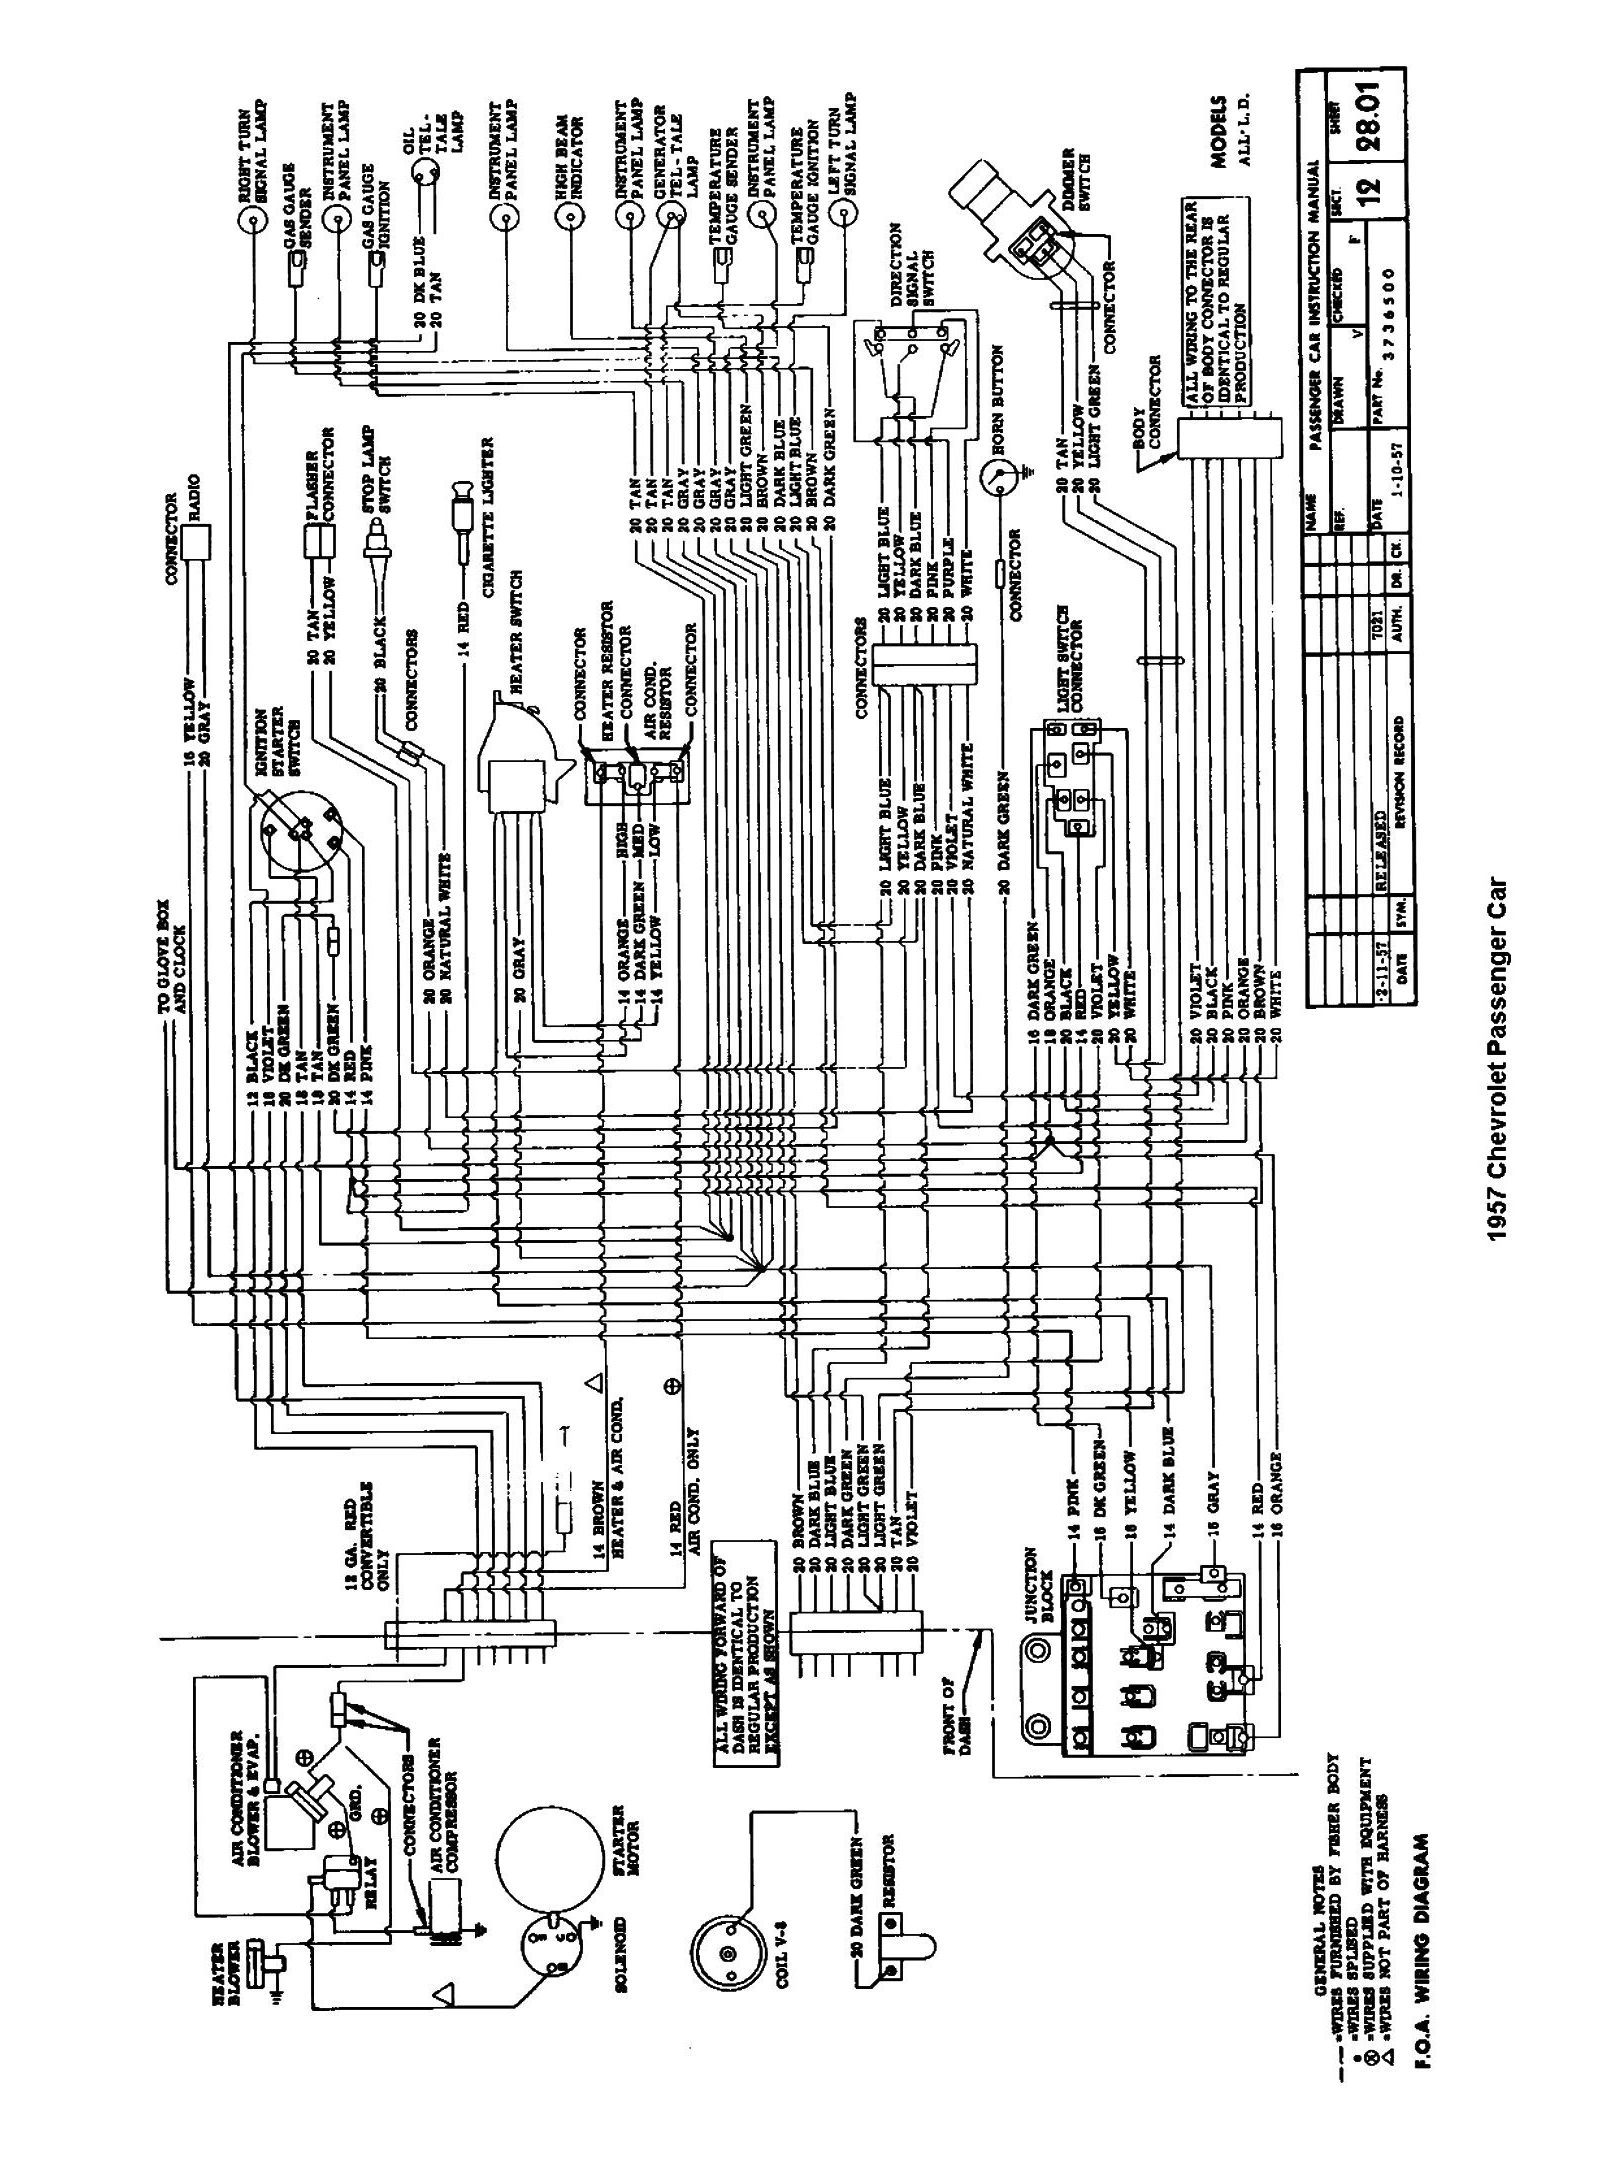 chevy wiring diagrams 57 Chevy Fan Belt 57 chevy wiring diagram Fuze Box Wiring Diagram 57 Chevy 57 Chevy Firing Order 1988 Chevy Silverado Wiring Diagram